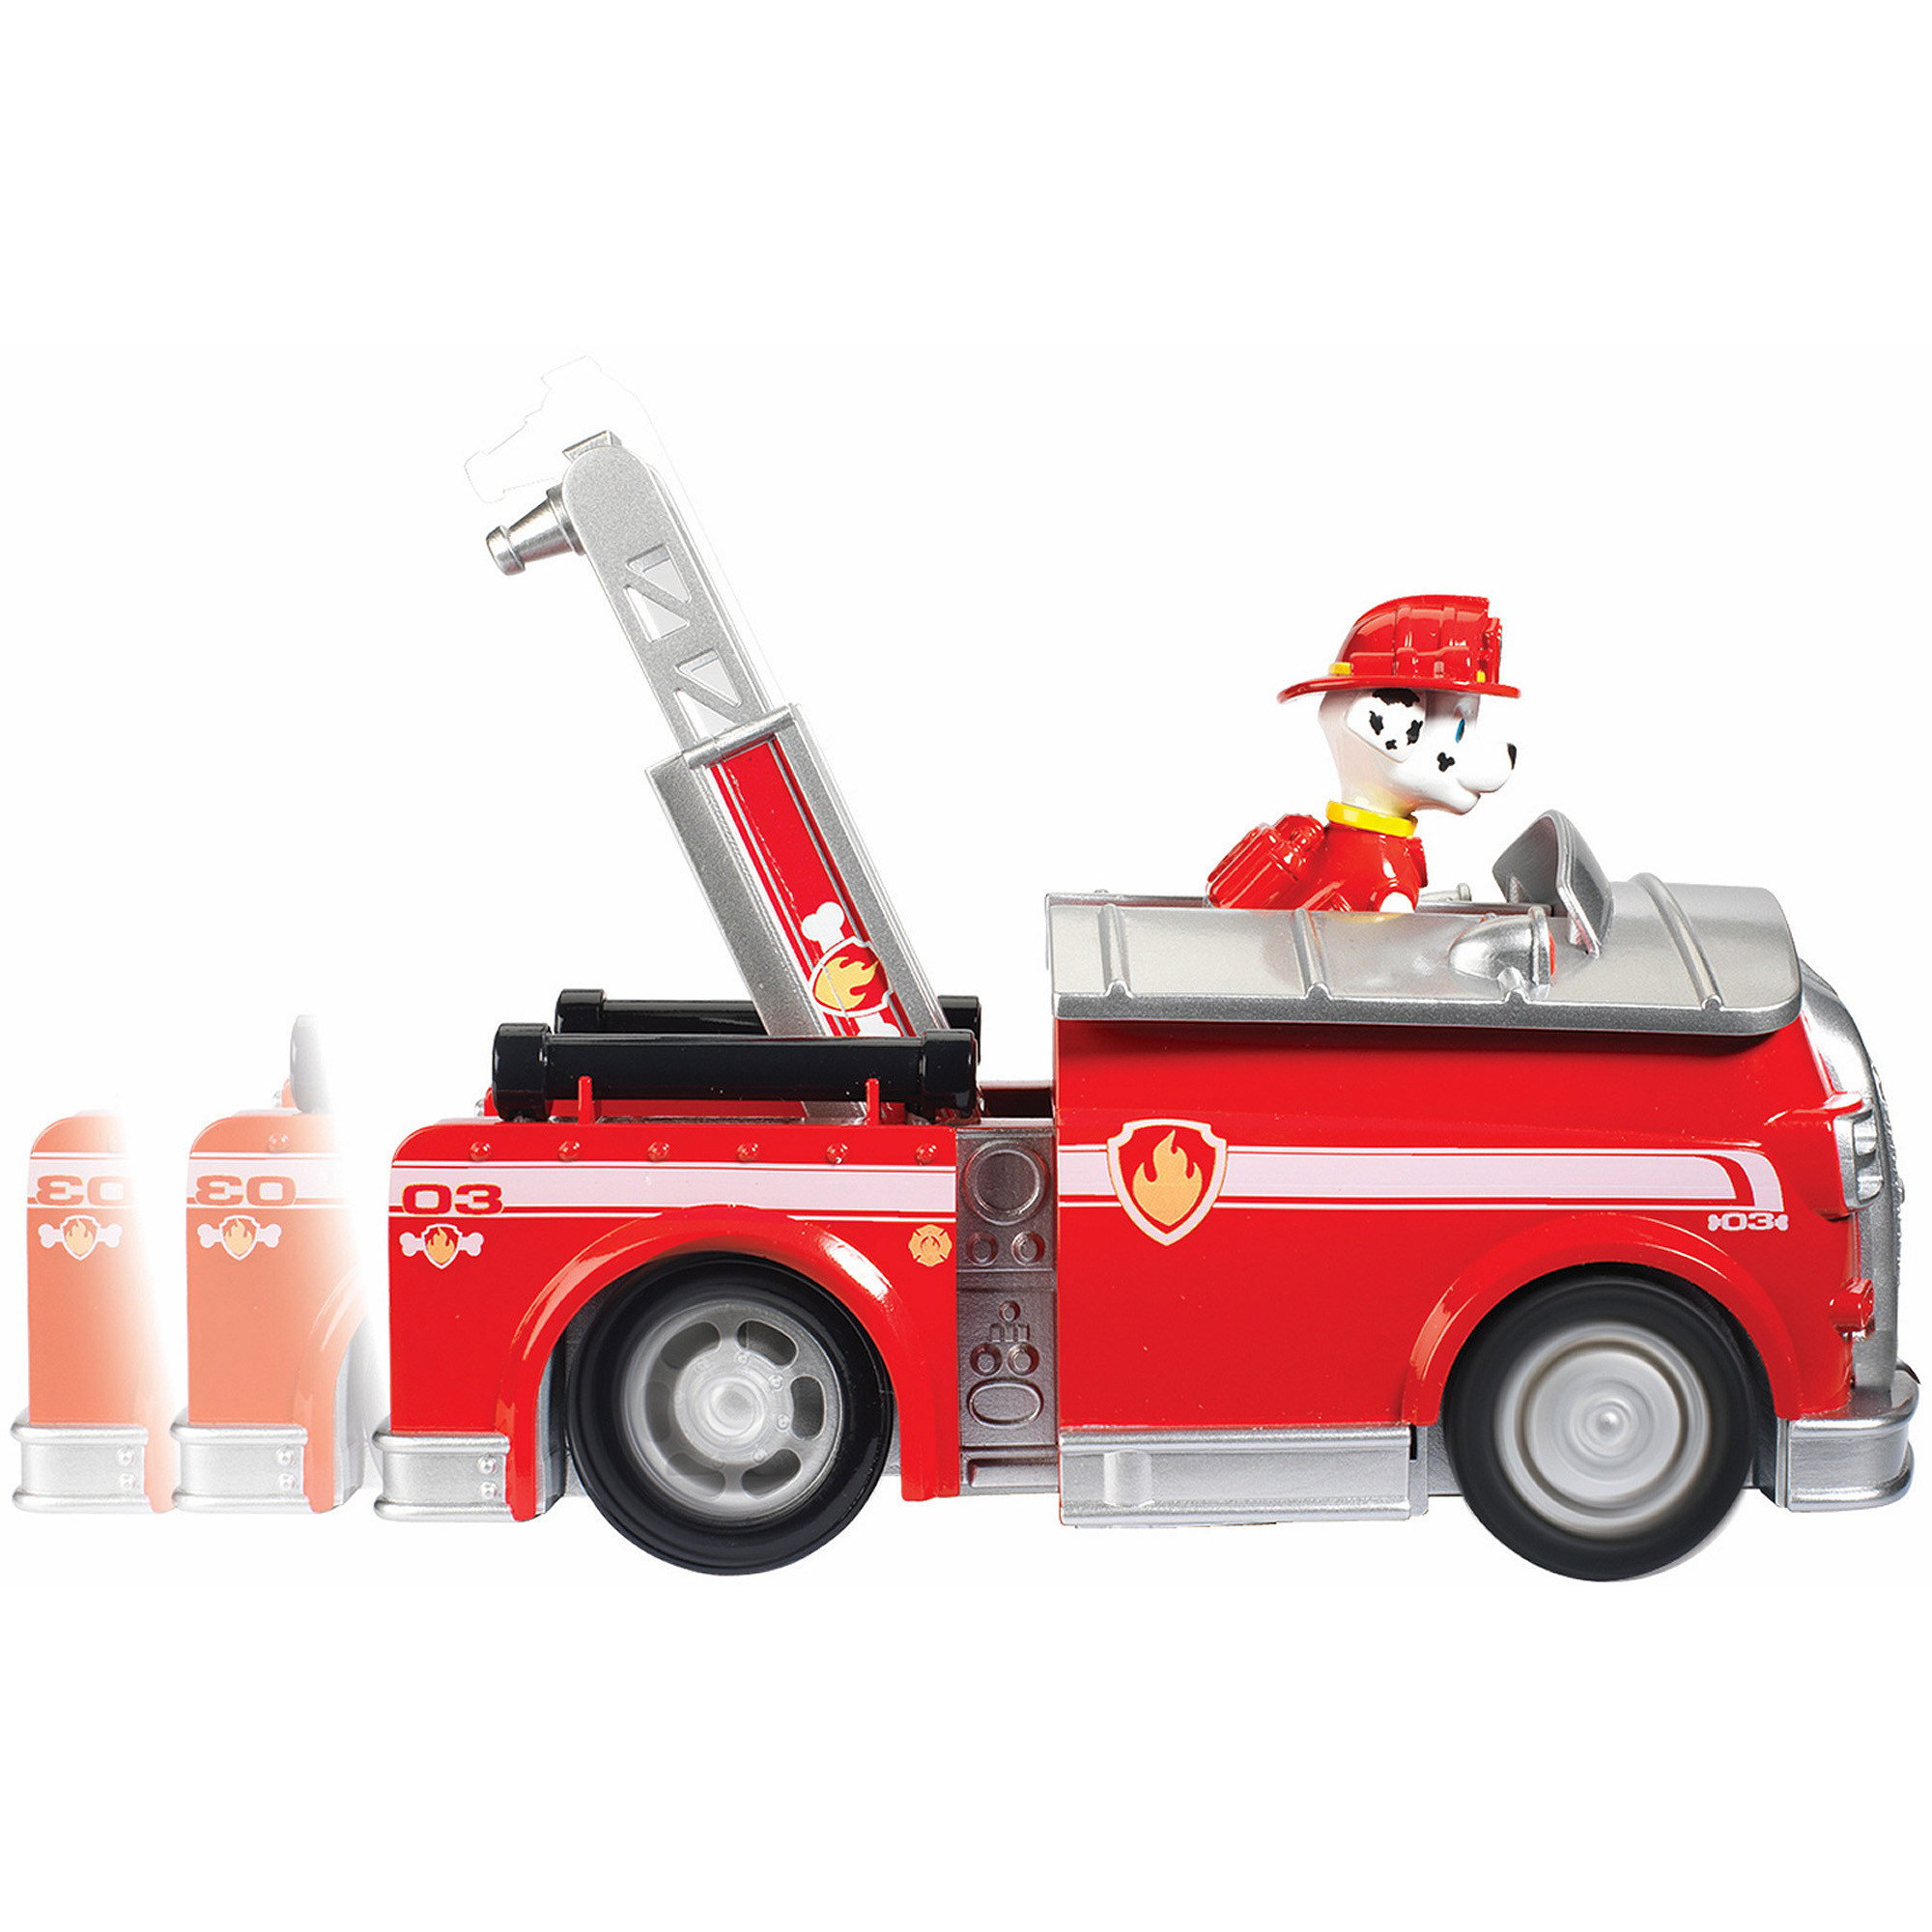 Nickelodeon Paw Patrol - On A Roll Marshall, Figure and Vehicle with Sounds